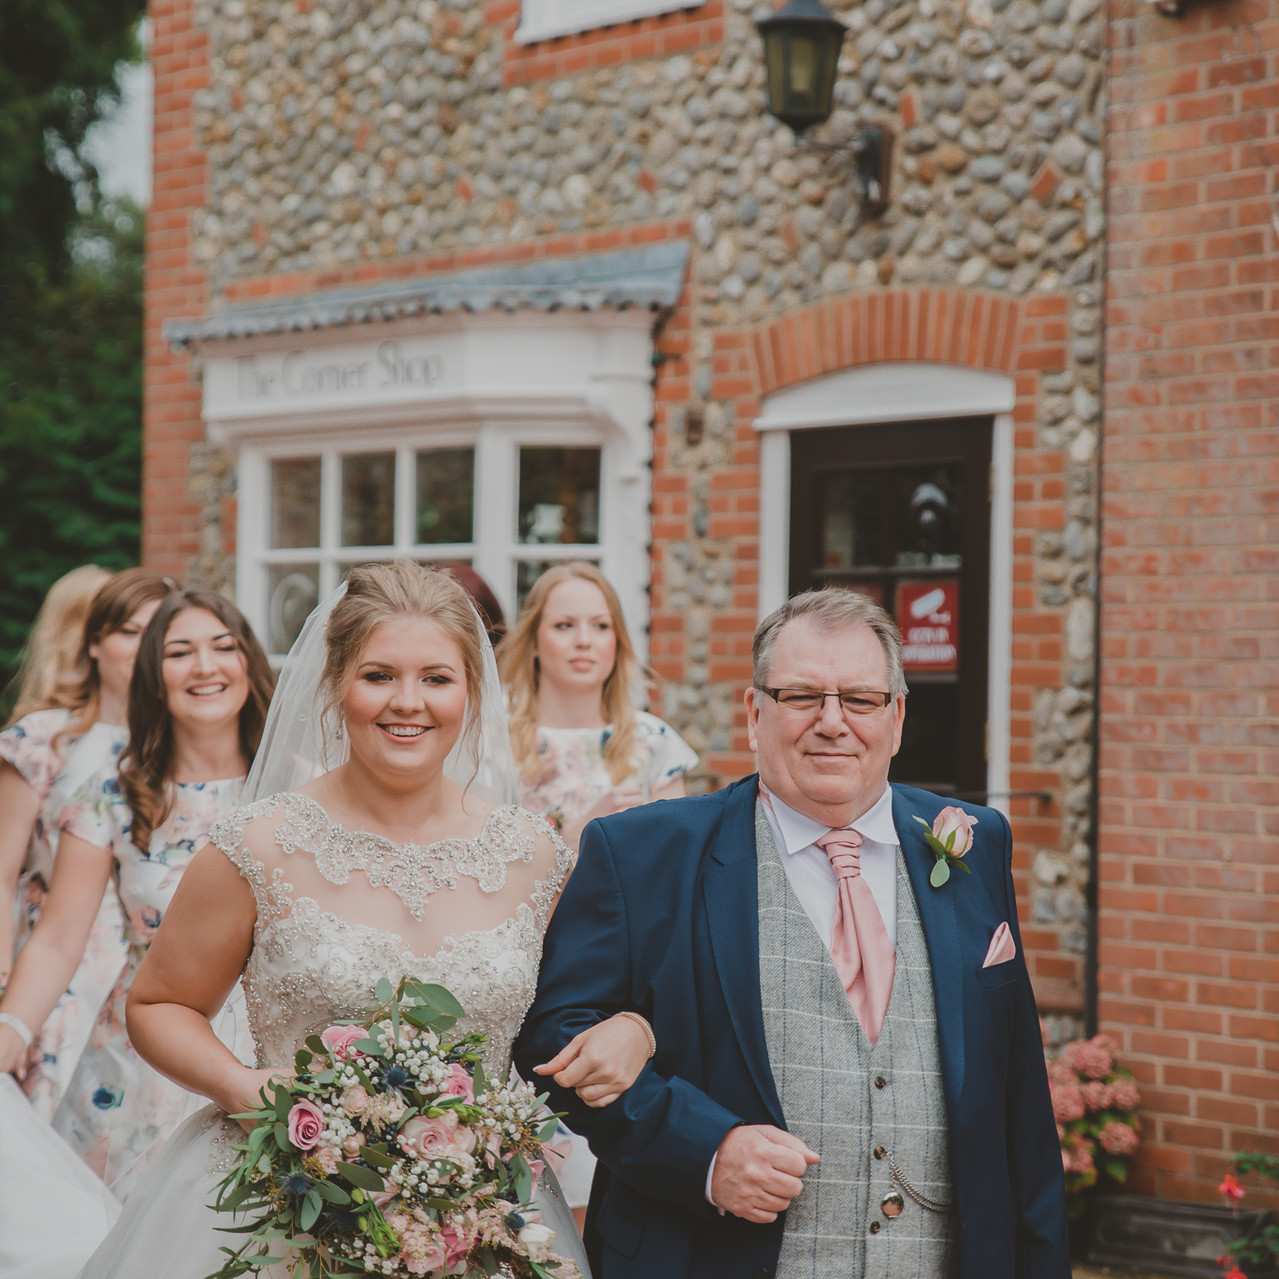 Fay Wedding - Thursford Collection at the Garden Pavilion, Norfolk. On the way to get married!